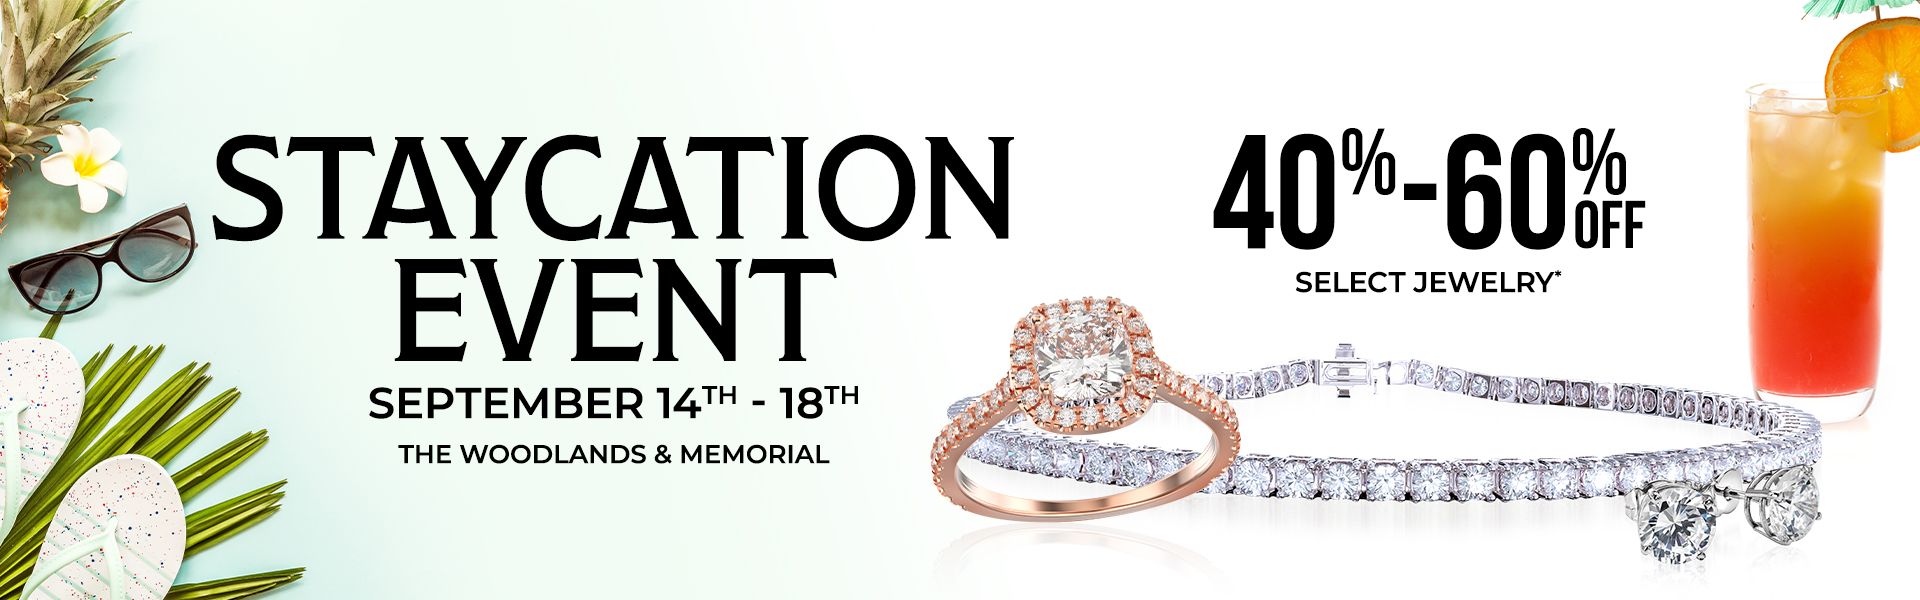 Staycation Sale Web Banner 20